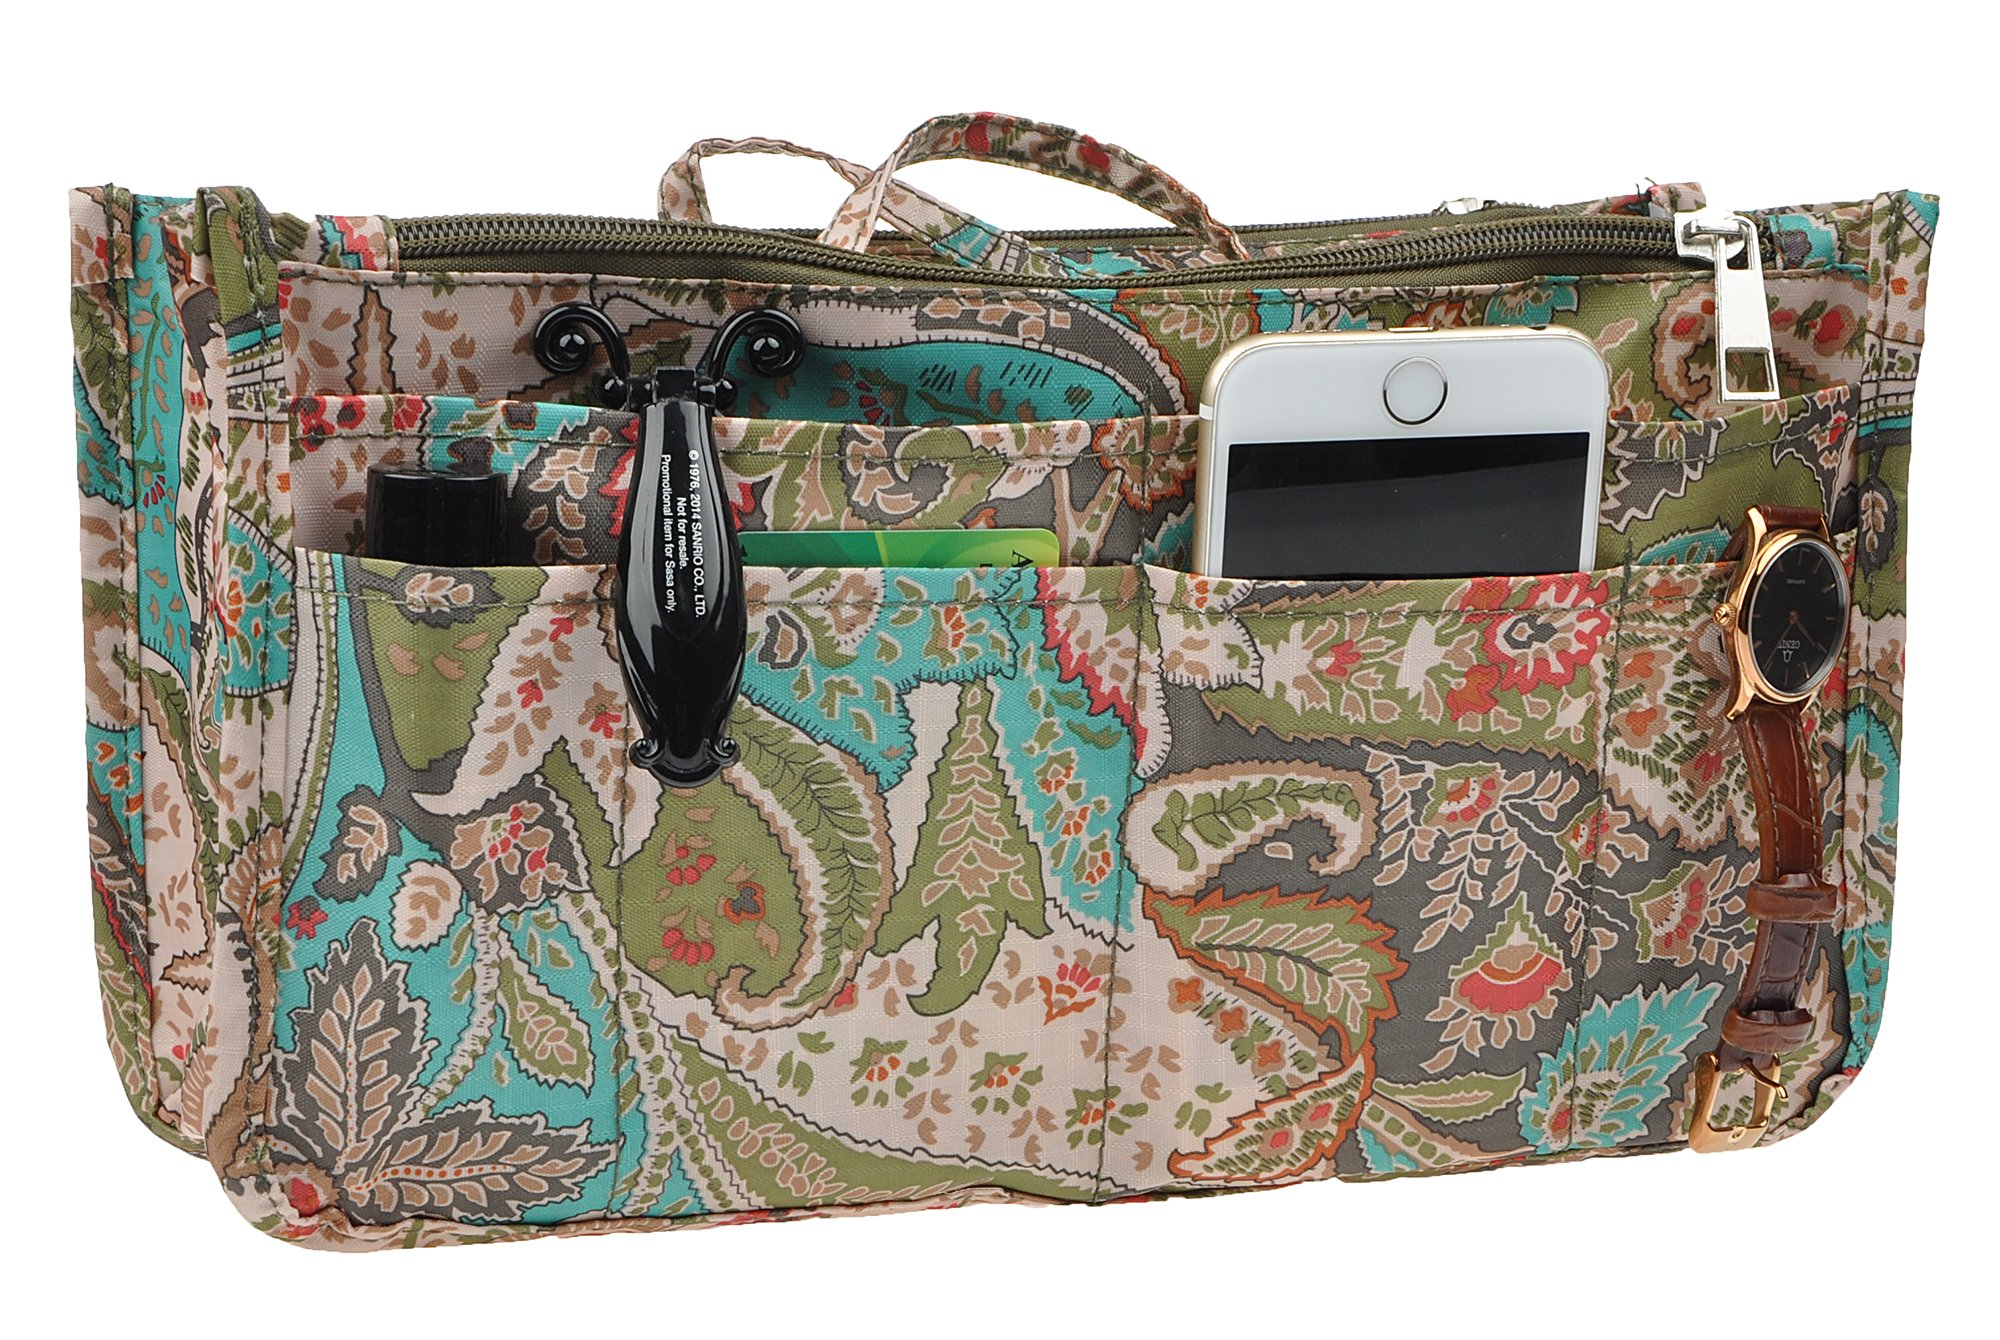 Vercord Printed Purse Handbag Tote Insert Organizer 13 Pockets With Zipper and Handles 2 Size, Peacock Flowers